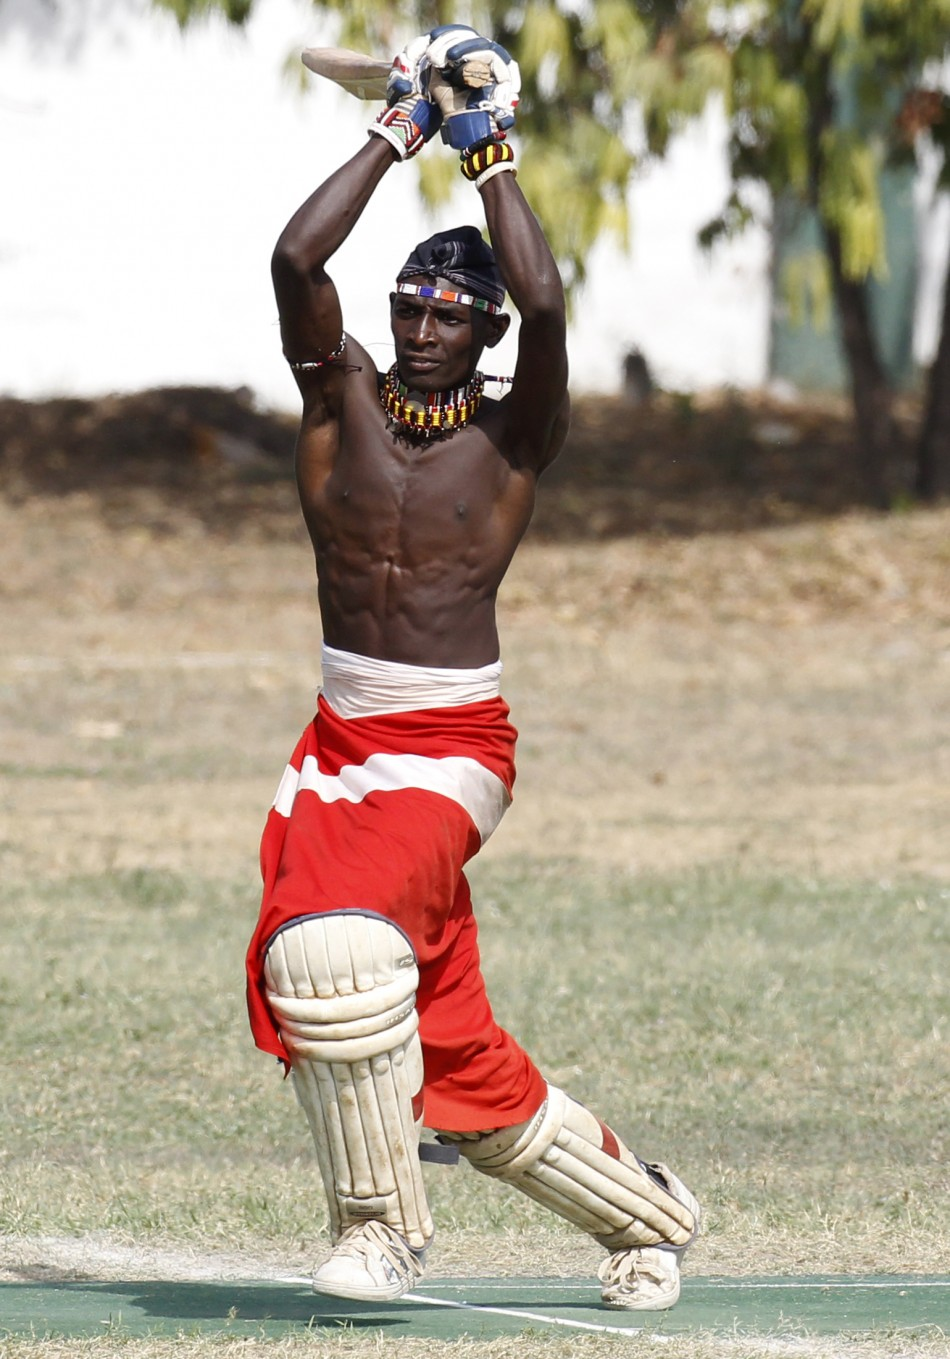 Olengais, captain of the Maasai Cricket Warriors, plays a shot during their friendly match in Mombasa